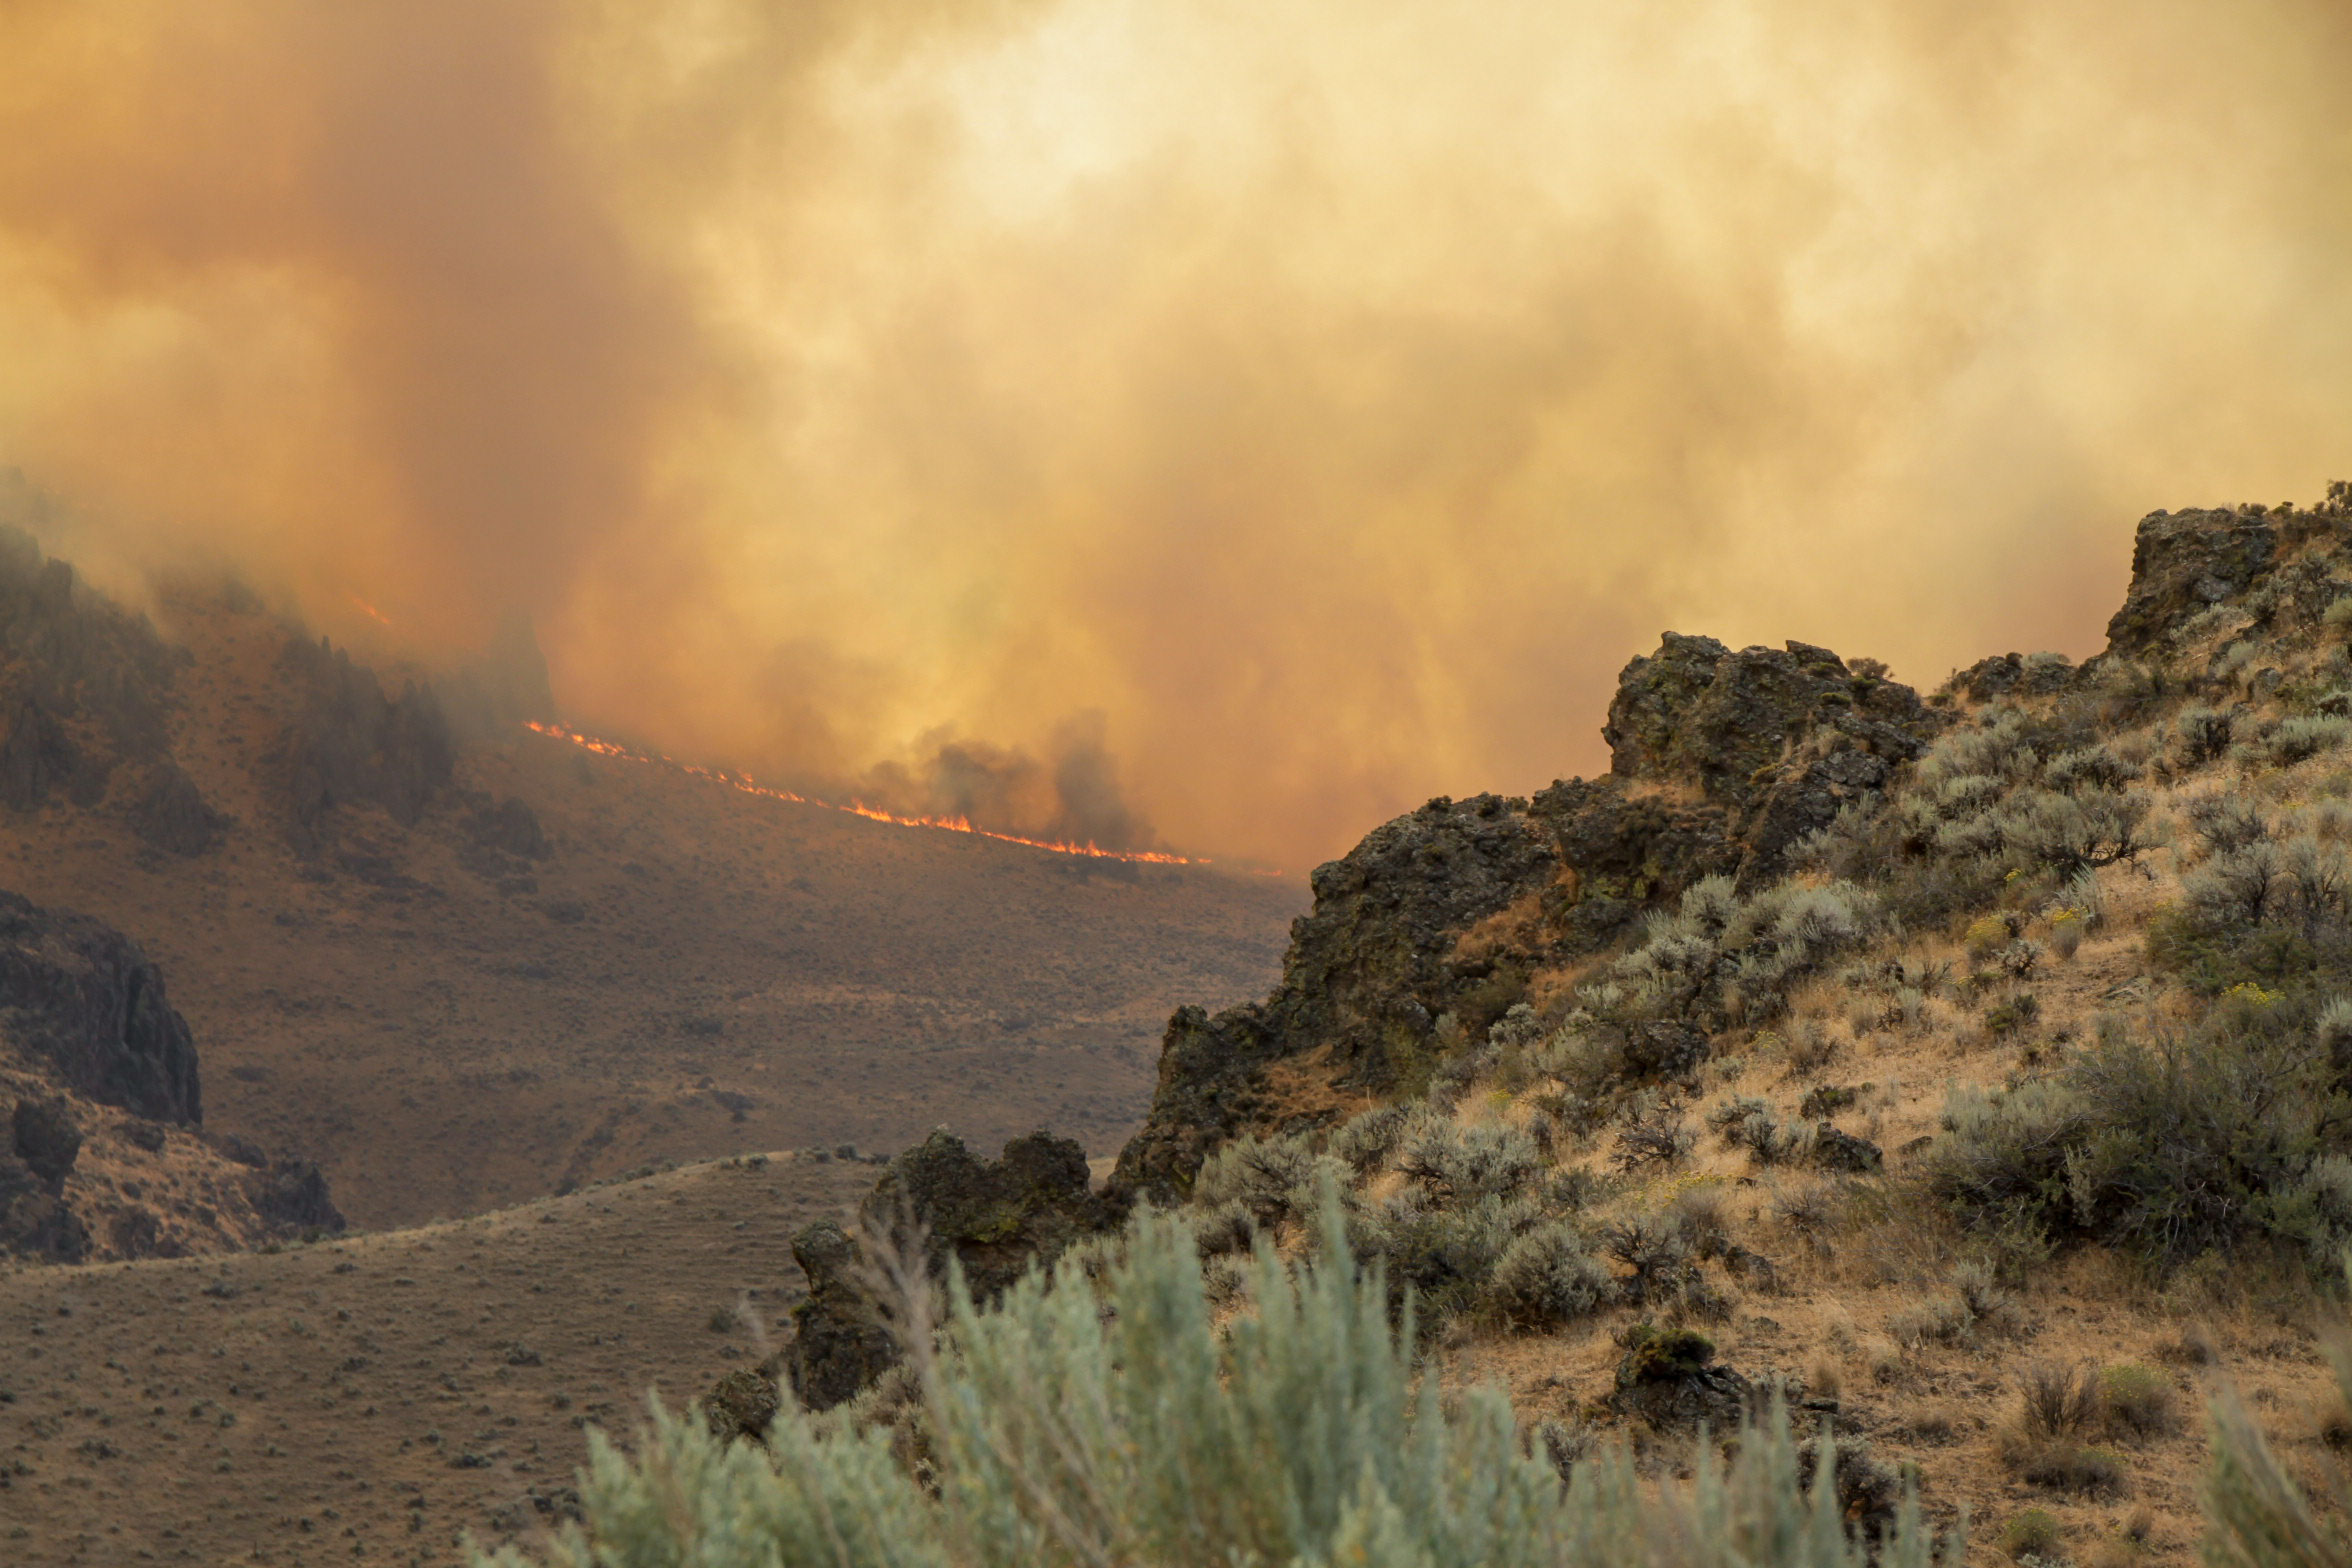 The 2015 Soda Fire burned nearly 280,000 acres in southwest Idaho and southeast Oregon, including nearly 200,000 acres of Greater Sage-Grouse habitat. BLM